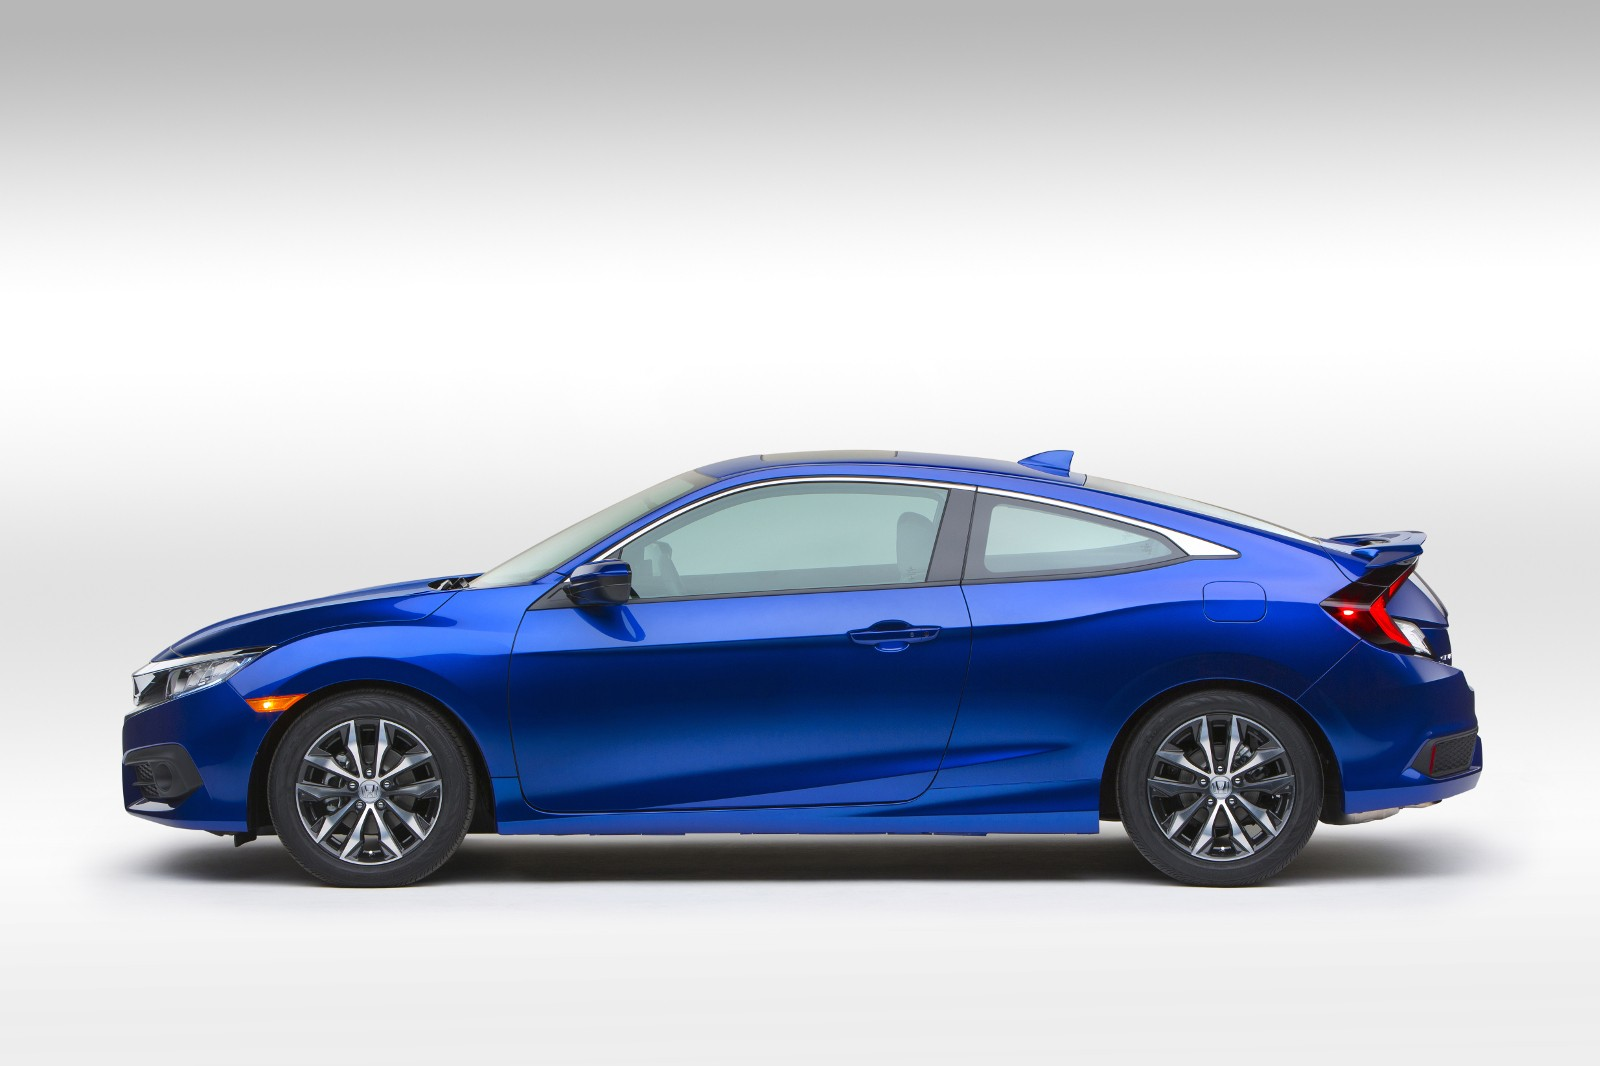 2016 Honda Civic Coupe Revealed with Bigger Cabin, Turbo Engine